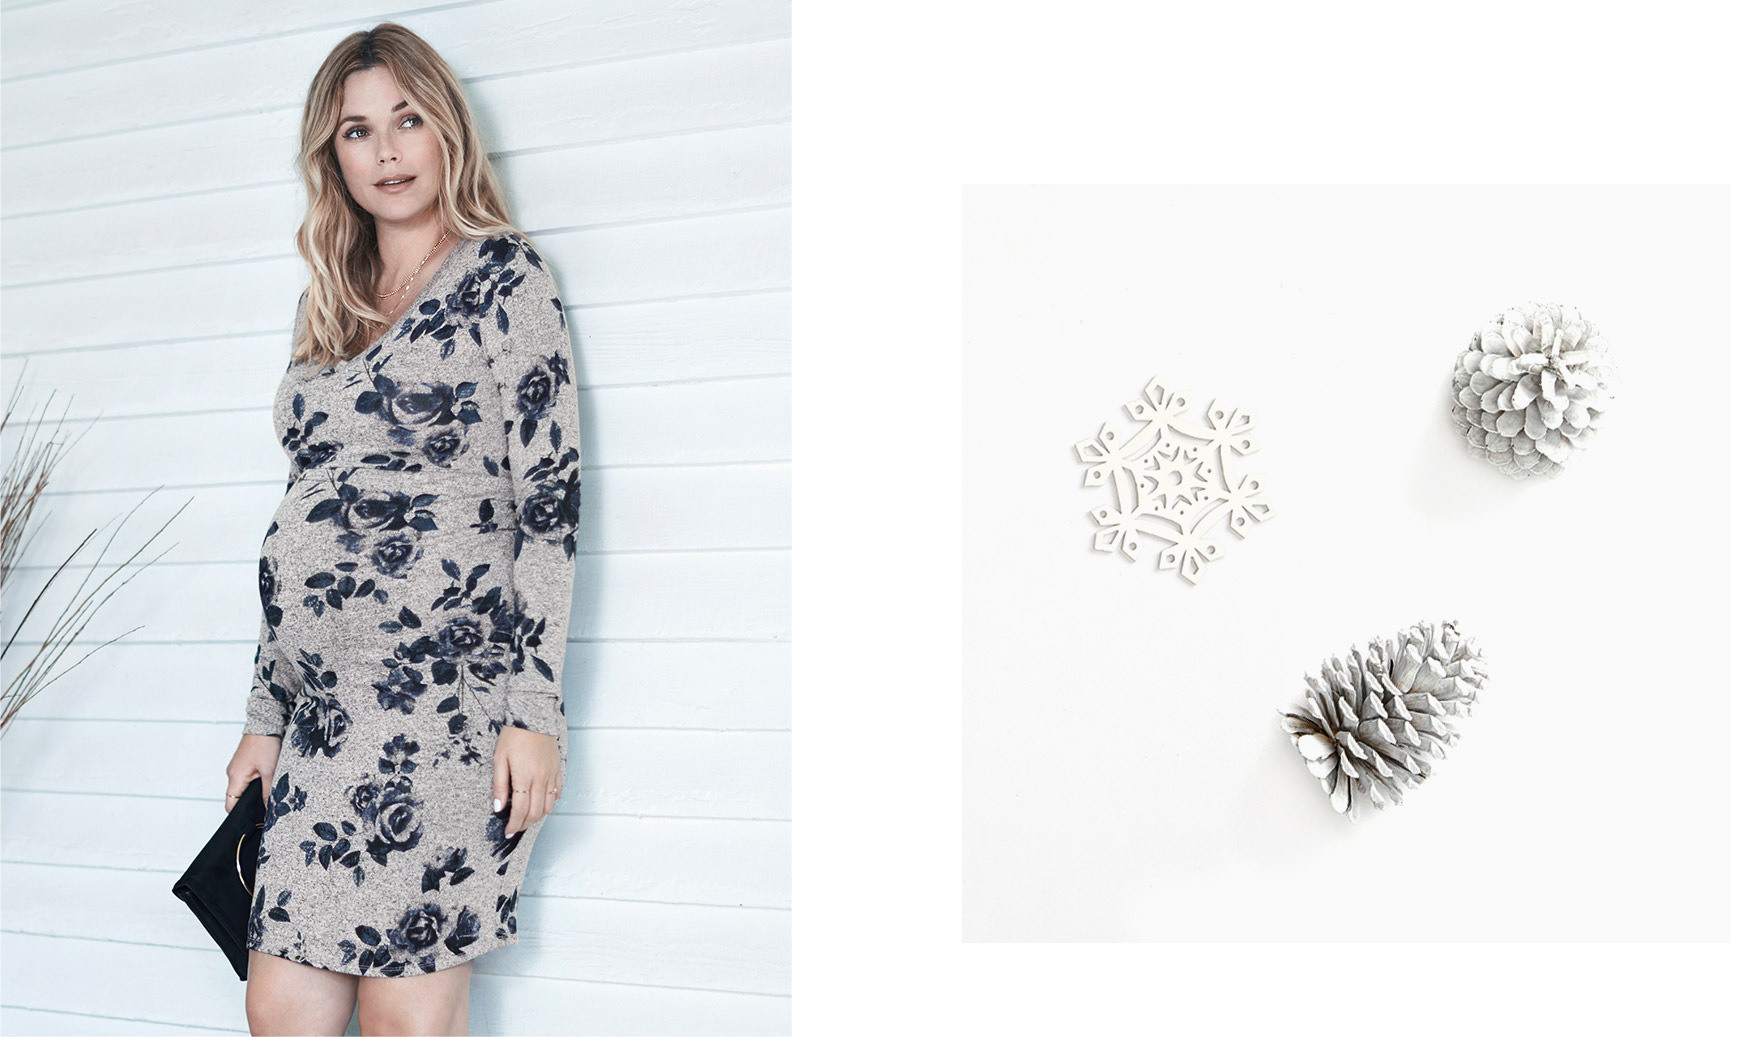 Festive dresses. Dress in festive all-in-one fashion that you're sure to stand out in